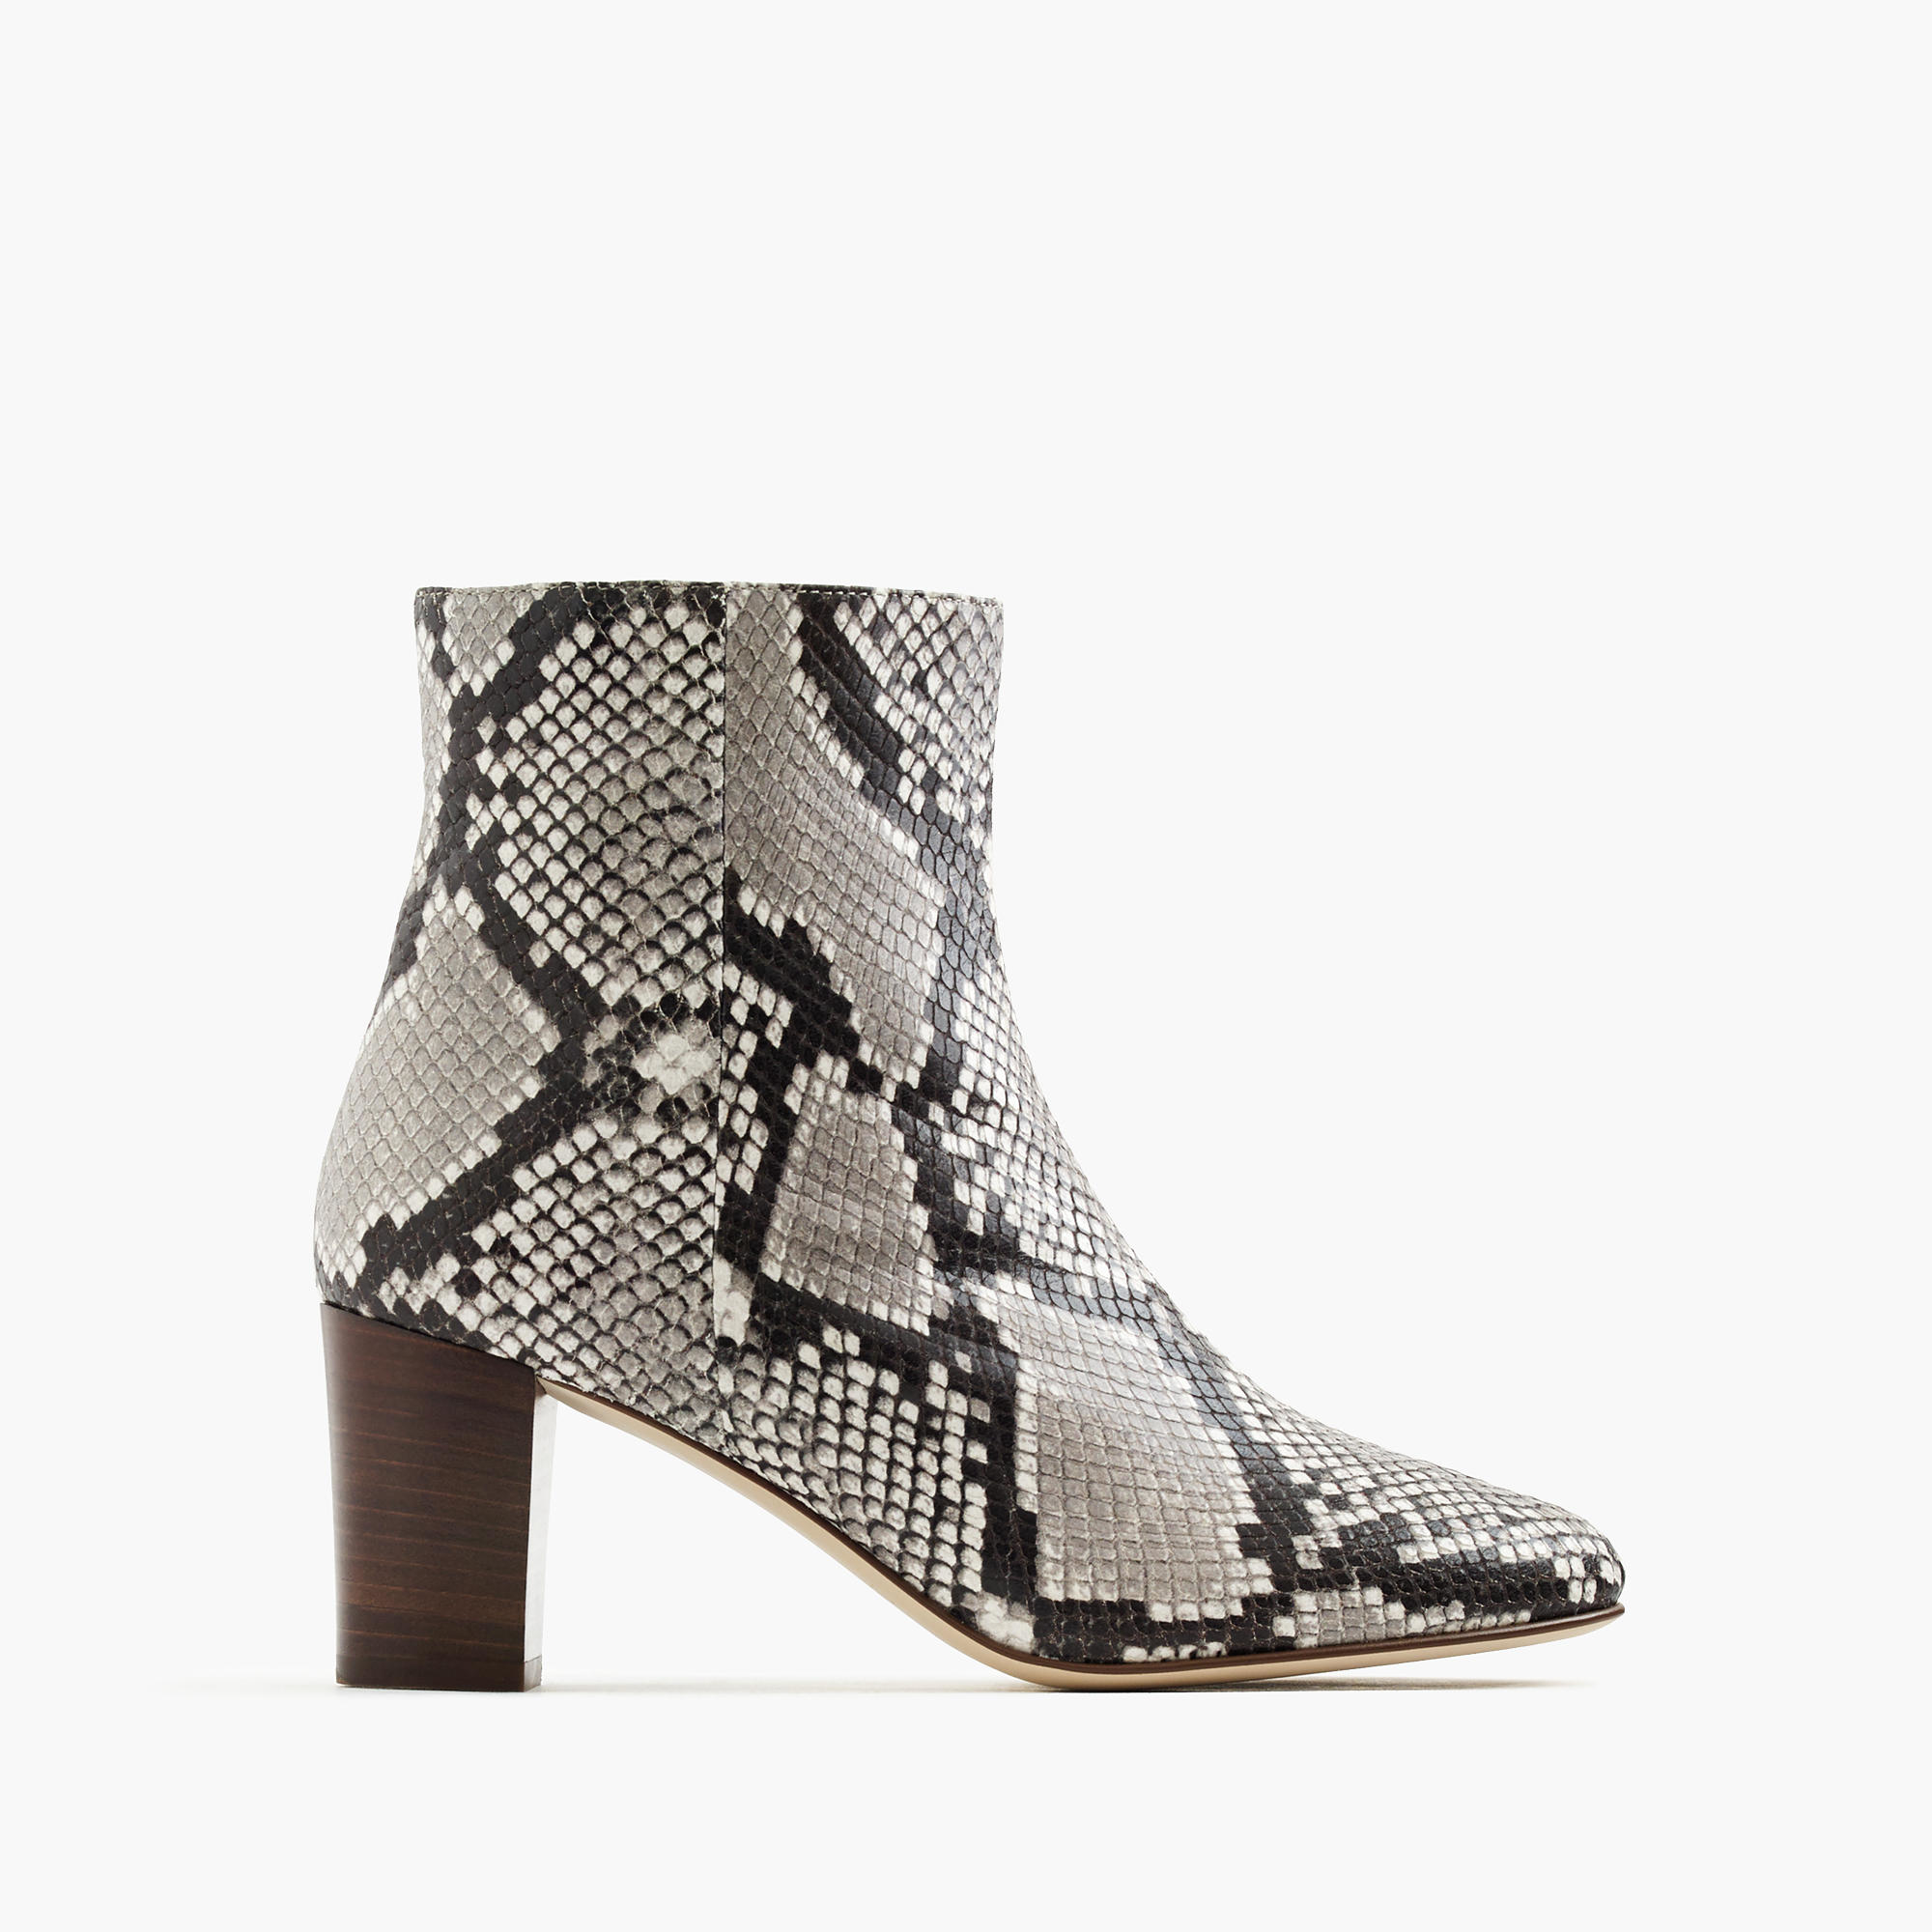 j crew heeled ankle boots in snakeskin printed leather in